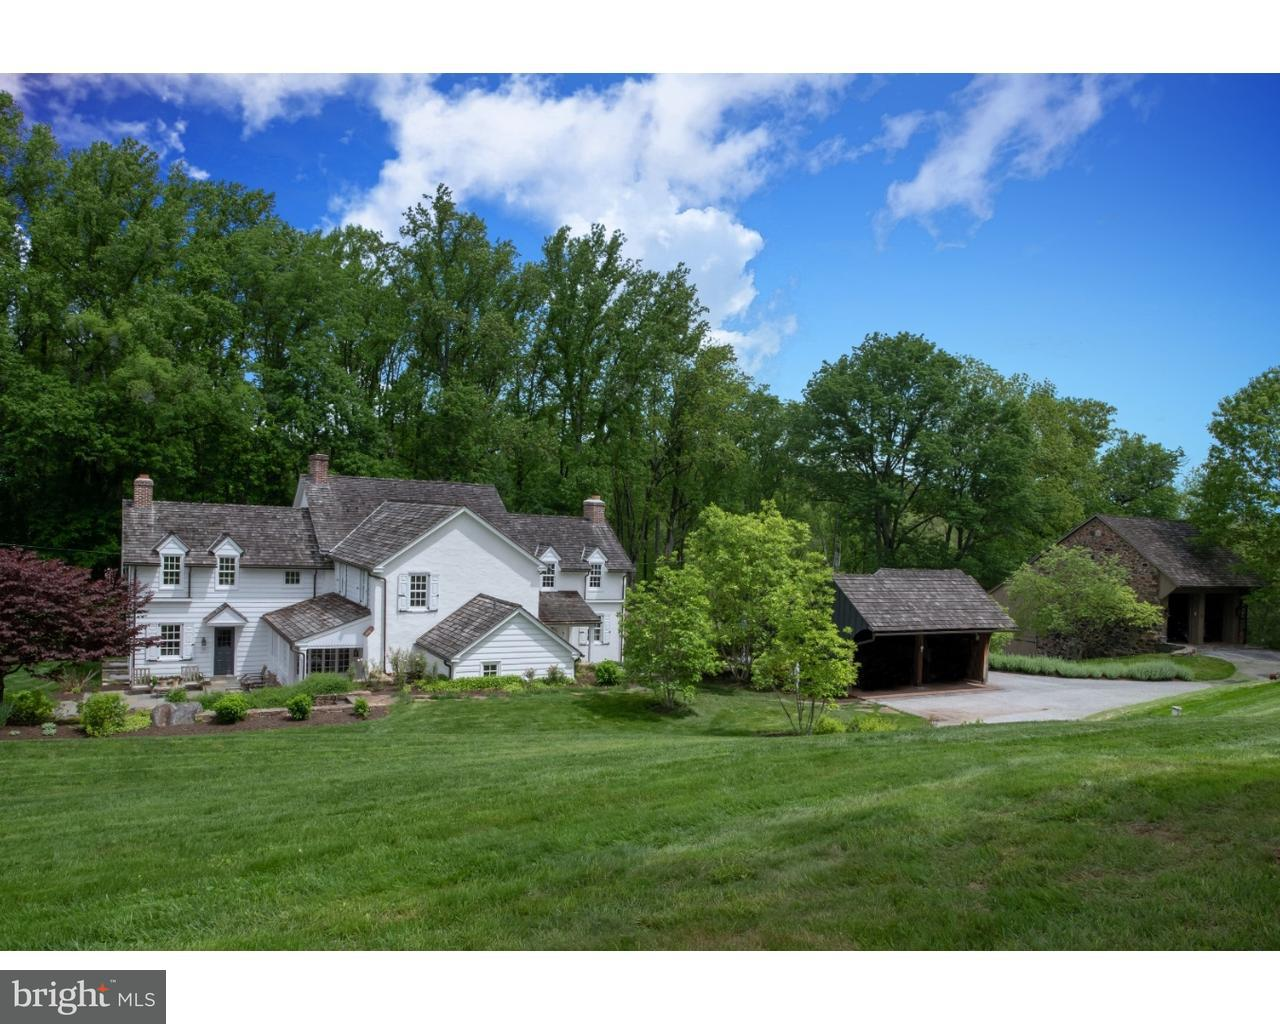 820 FAIRVILLE RD, CHADDS FORD - Listed at $1,900,000, CHADDS FORD